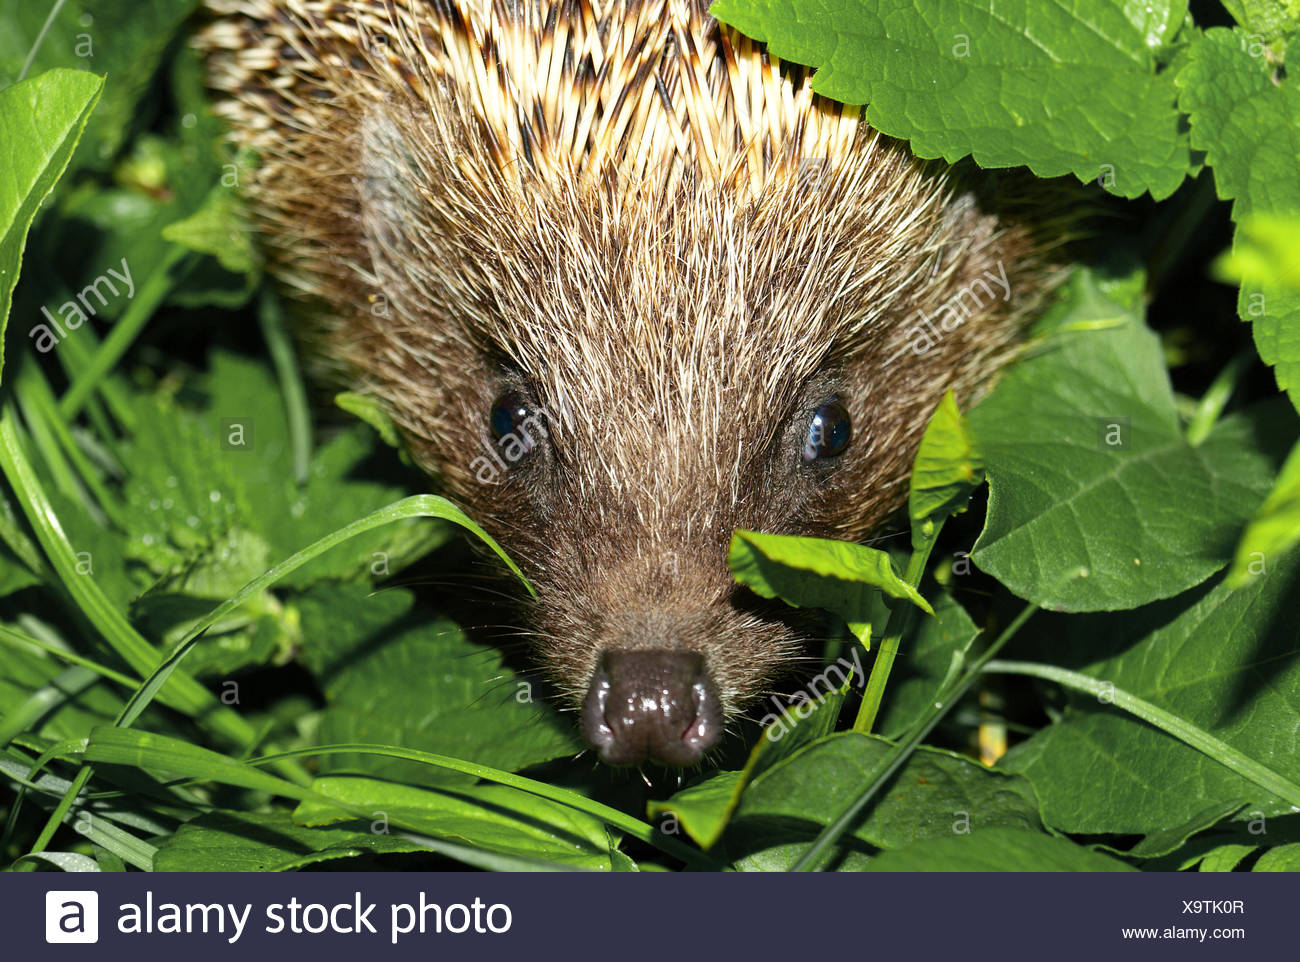 hedgehog muzzle - Stock Image